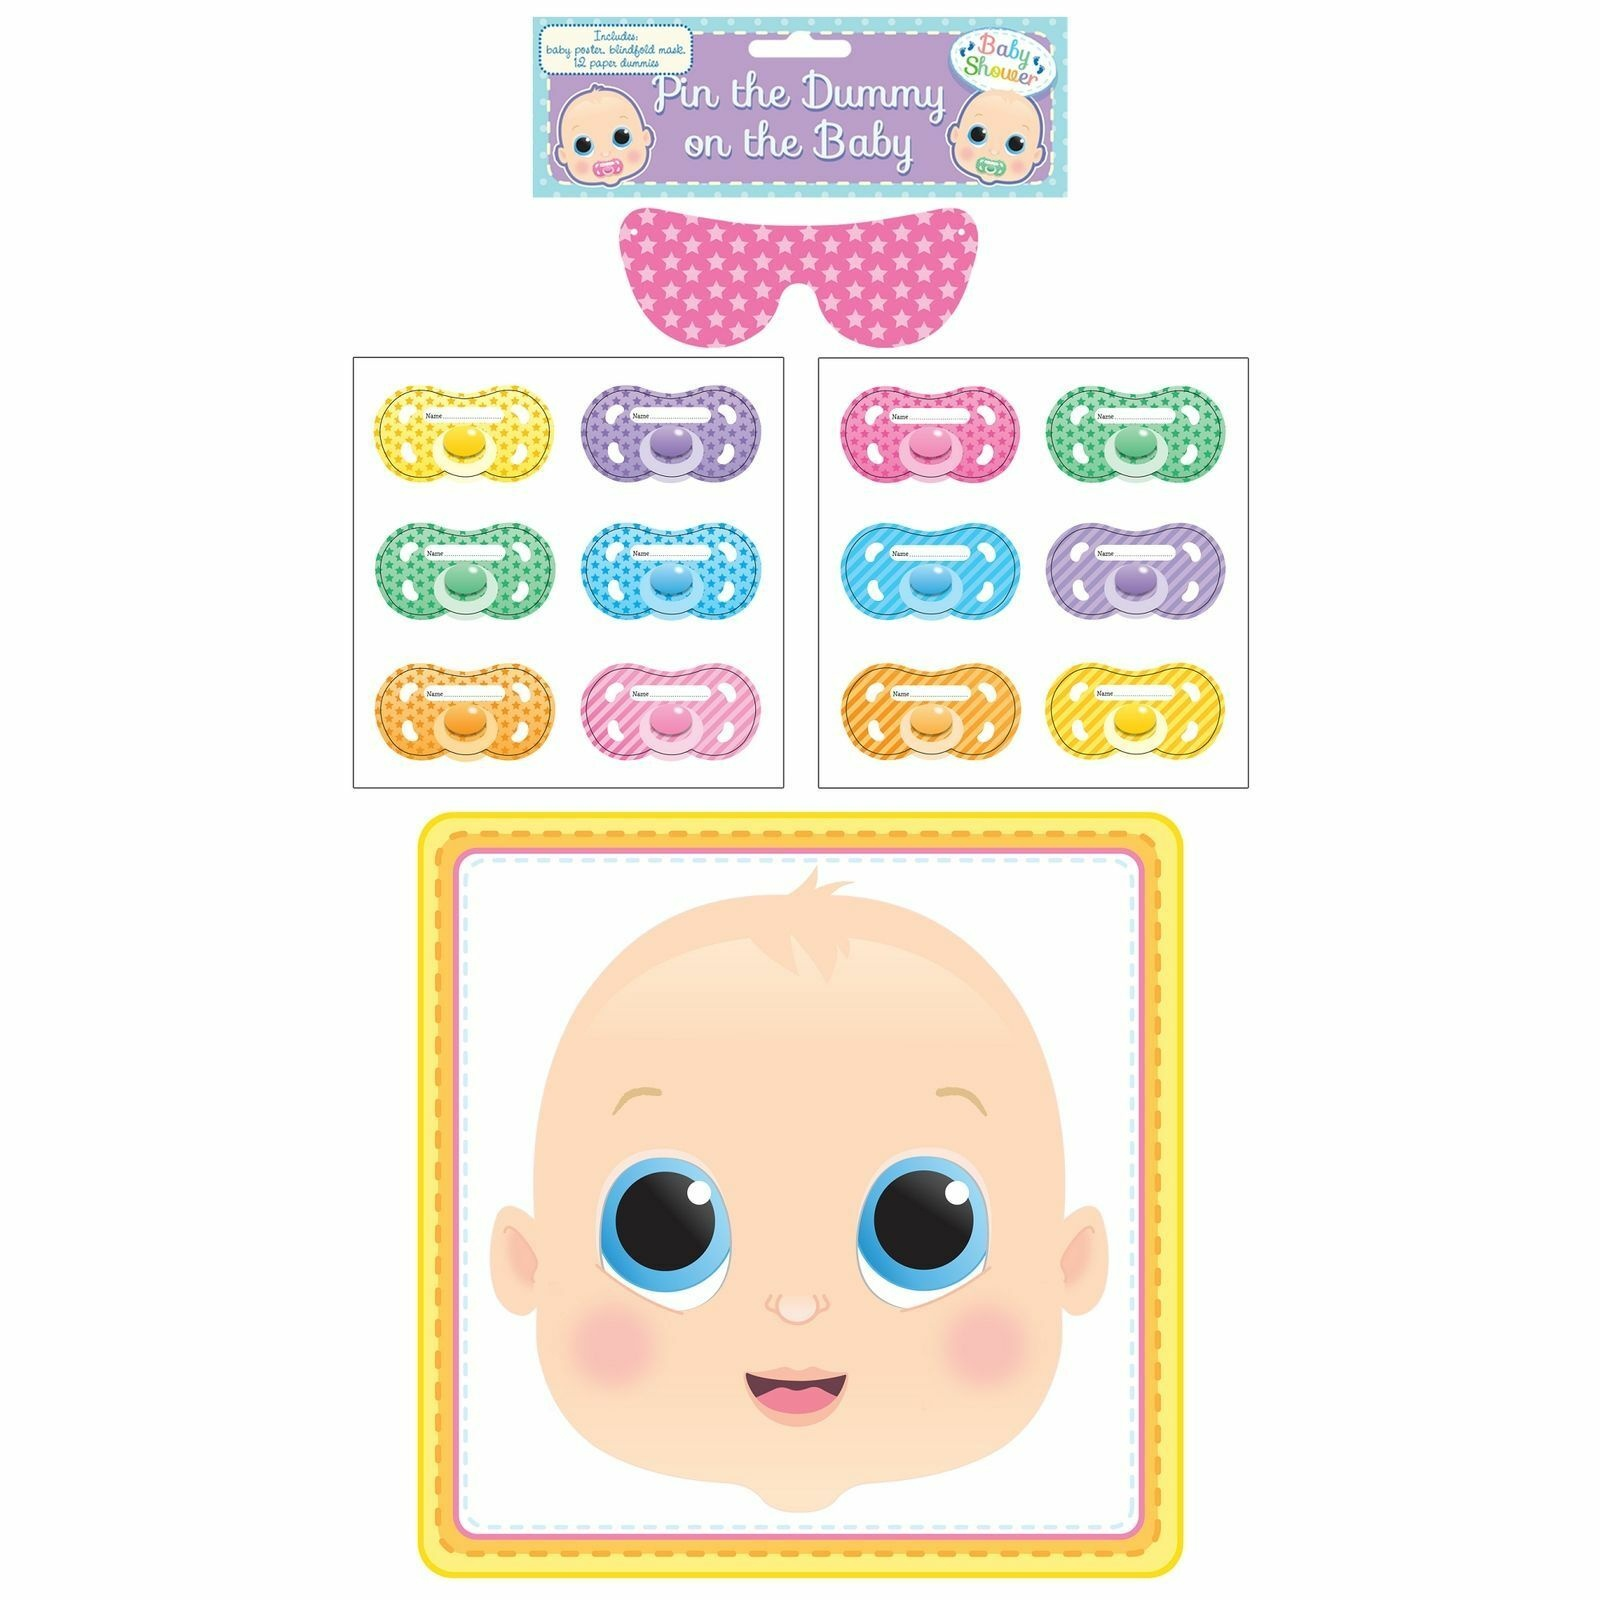 Pin Dummy On The Baby Fun Party Game Shower Celebration Sticker For - Pin The Dummy On The Baby Free Printable